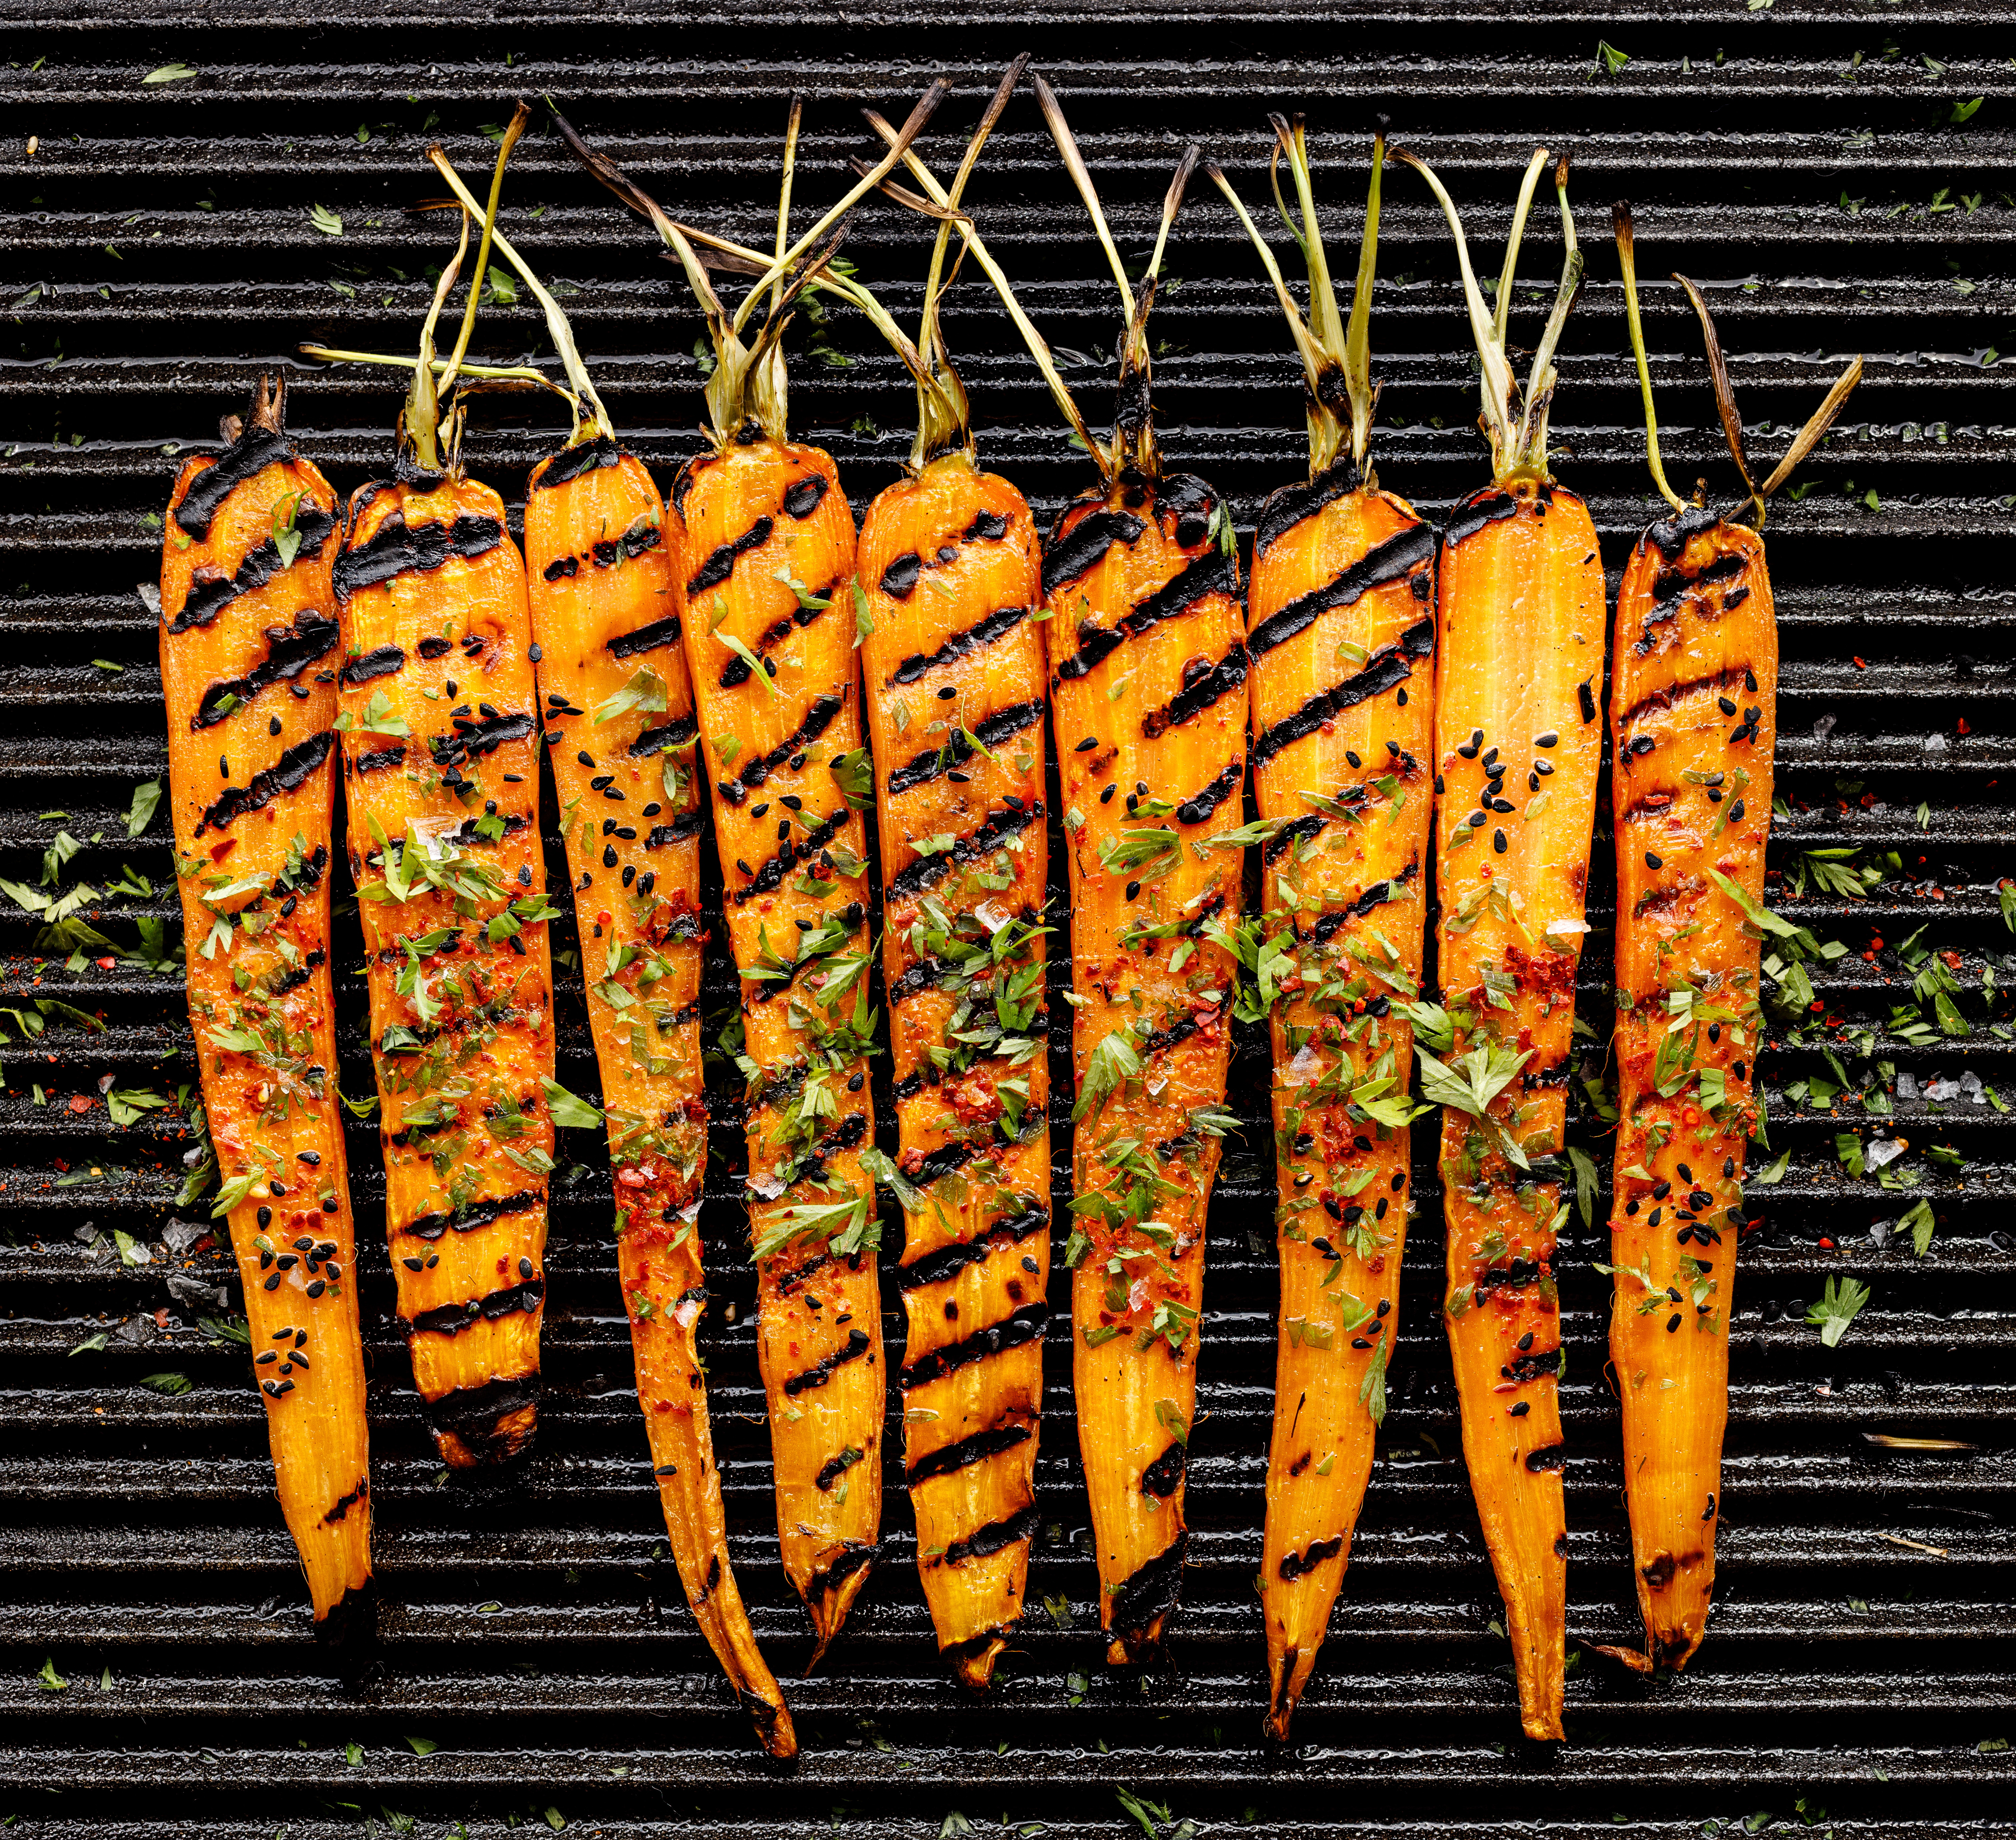 Grilled Carrots with Avocado and Mint